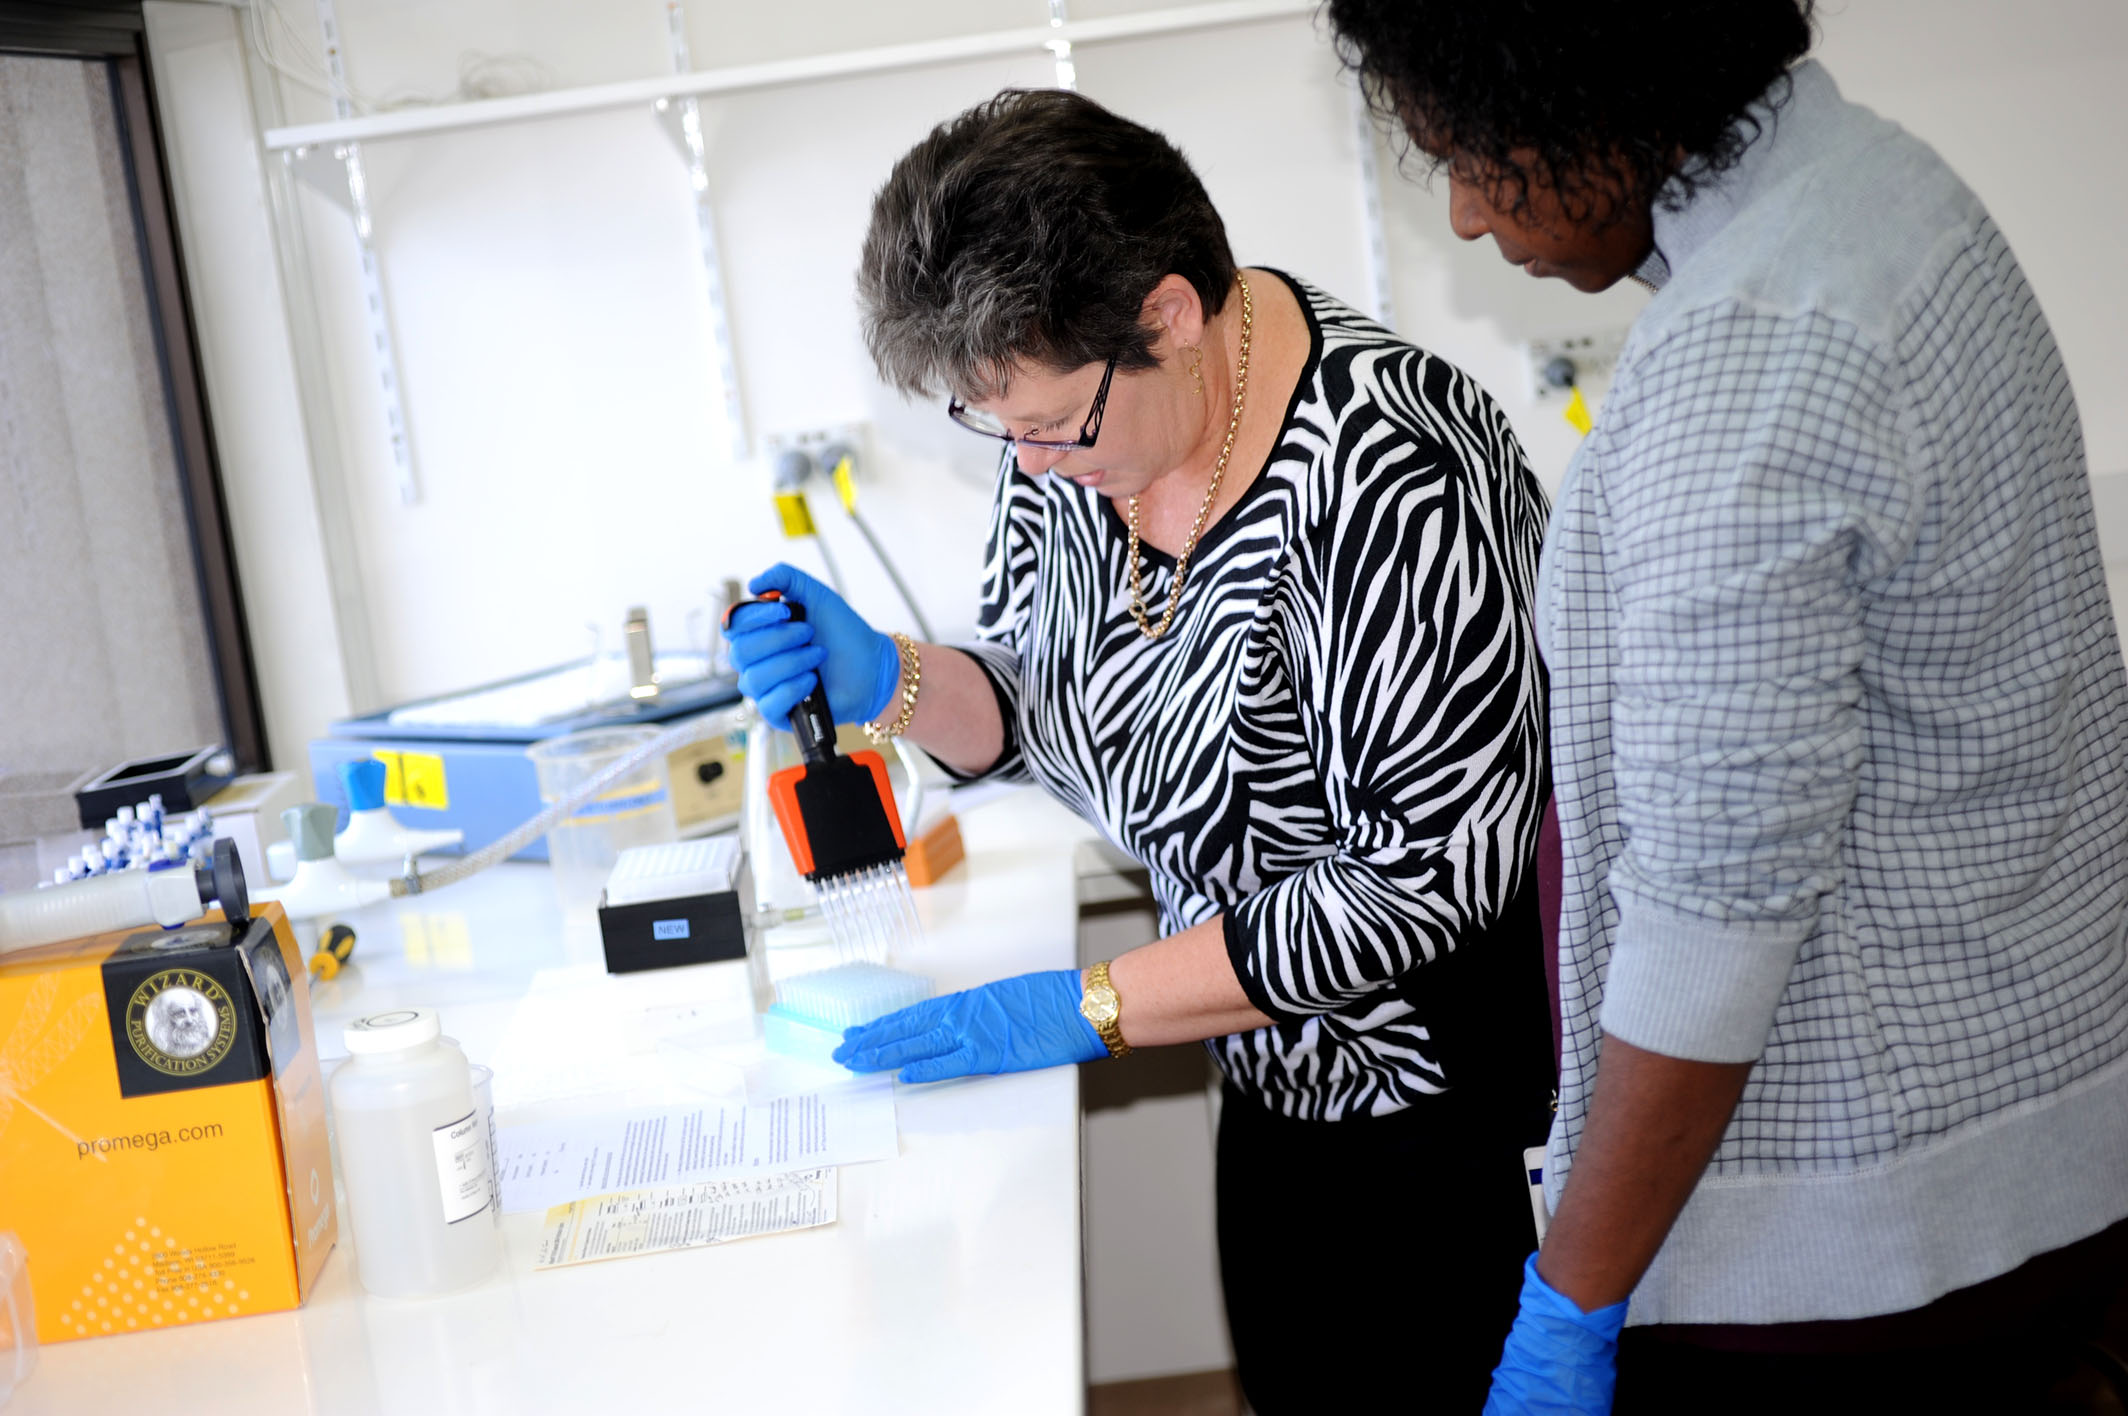 Sharon Appleyard at a lab bench holding a multi-pipette demonstrating the processes of DNA extractions in fish.